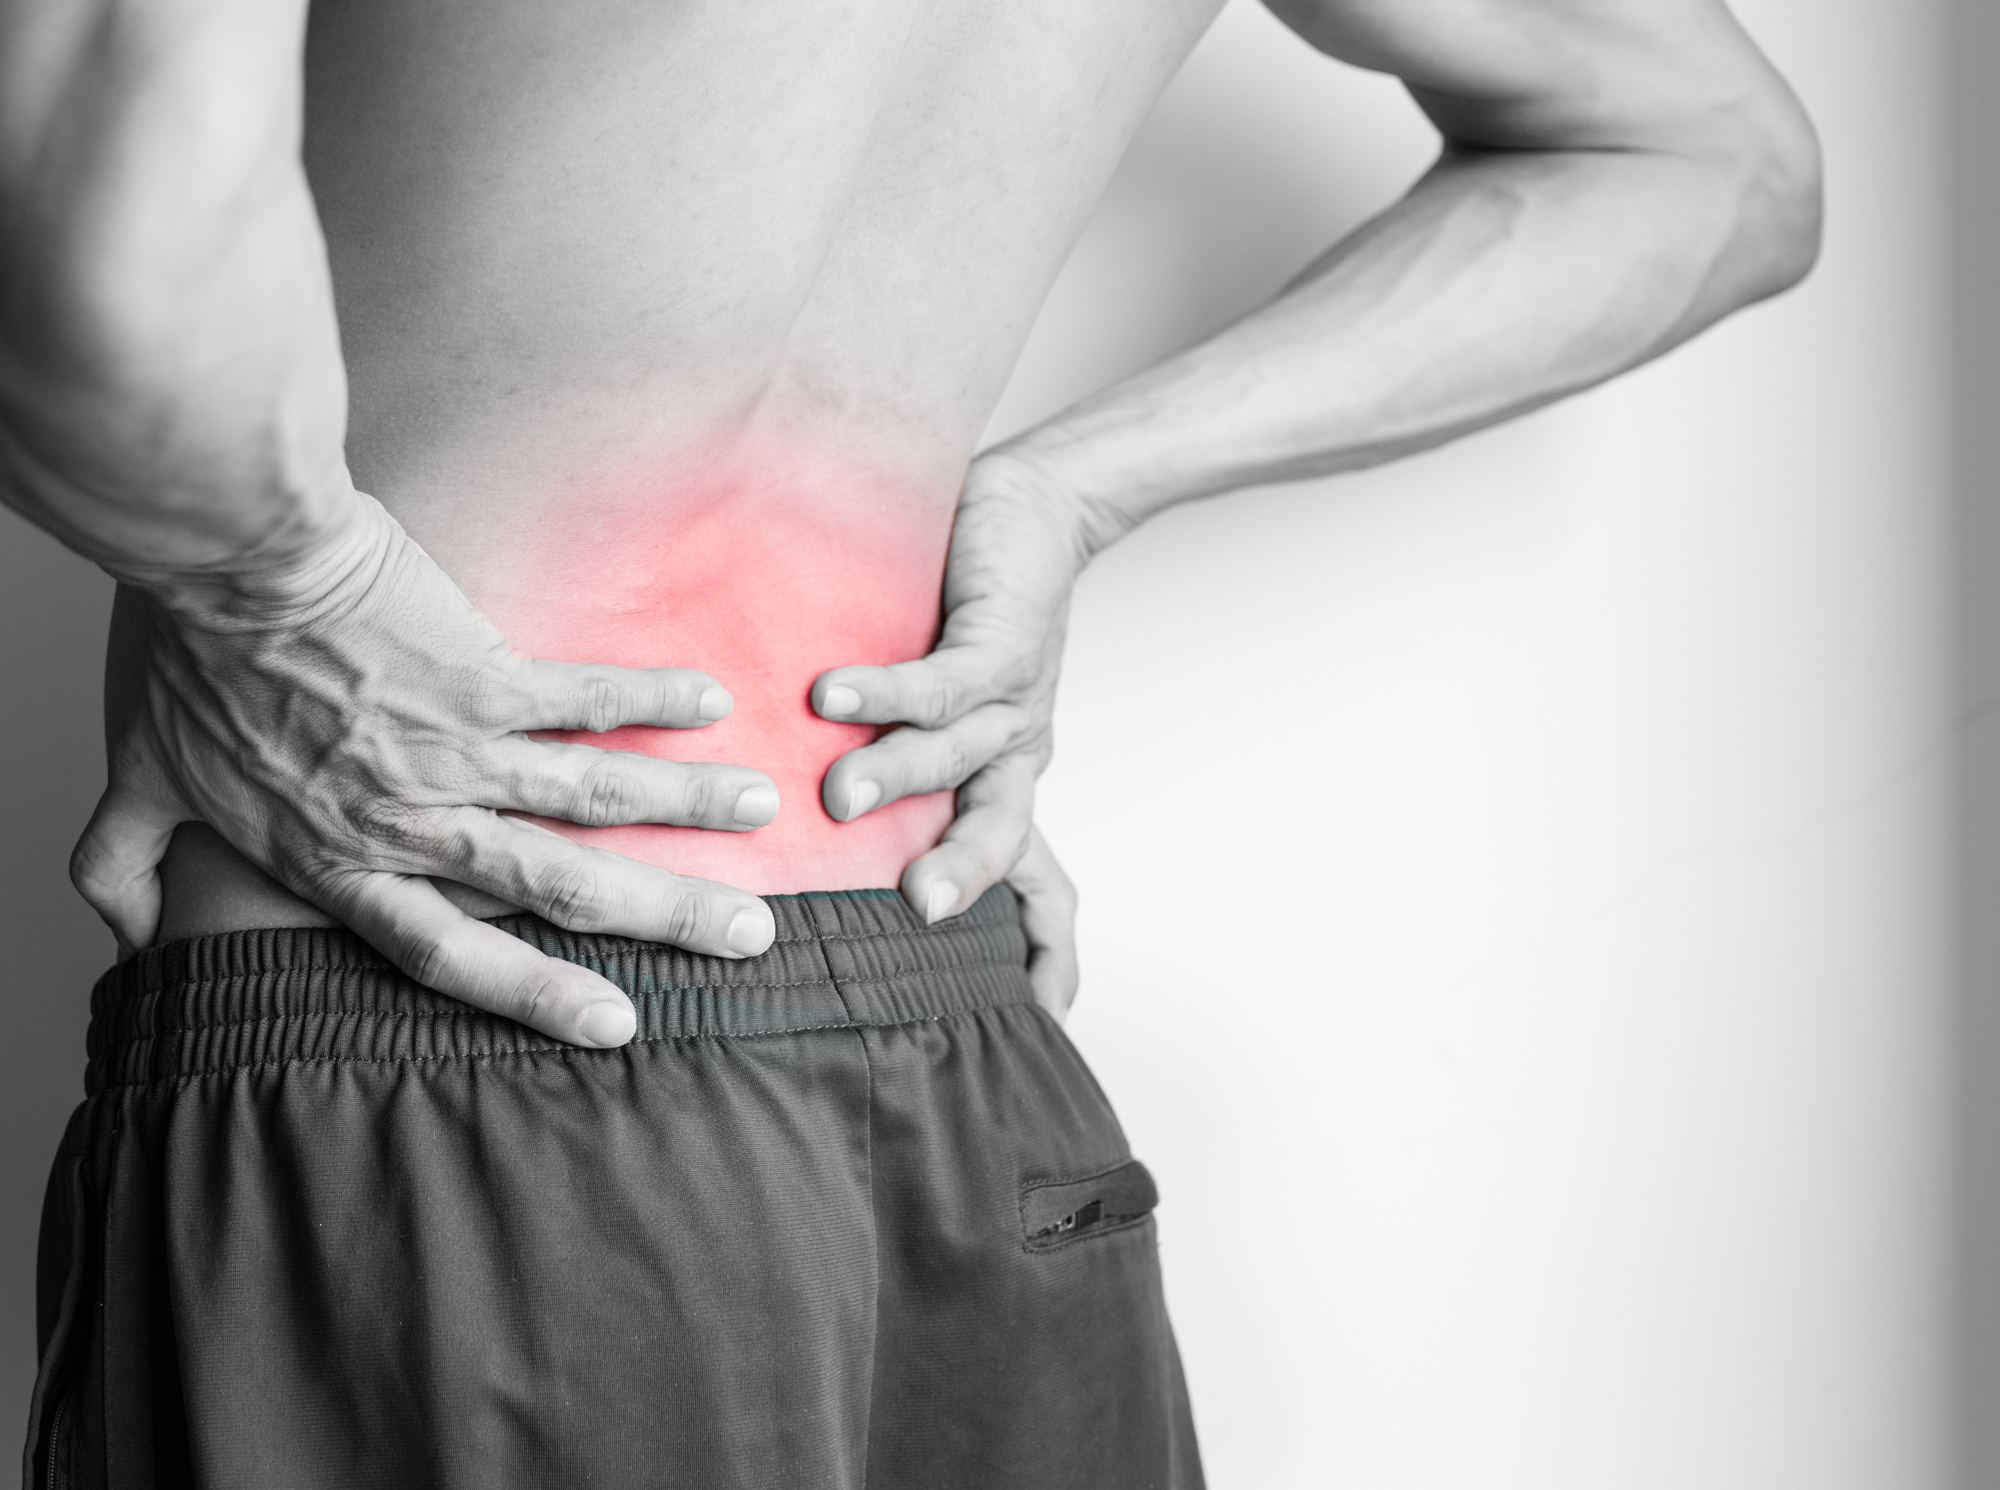 7 Signs You Need Advanced Pain Management